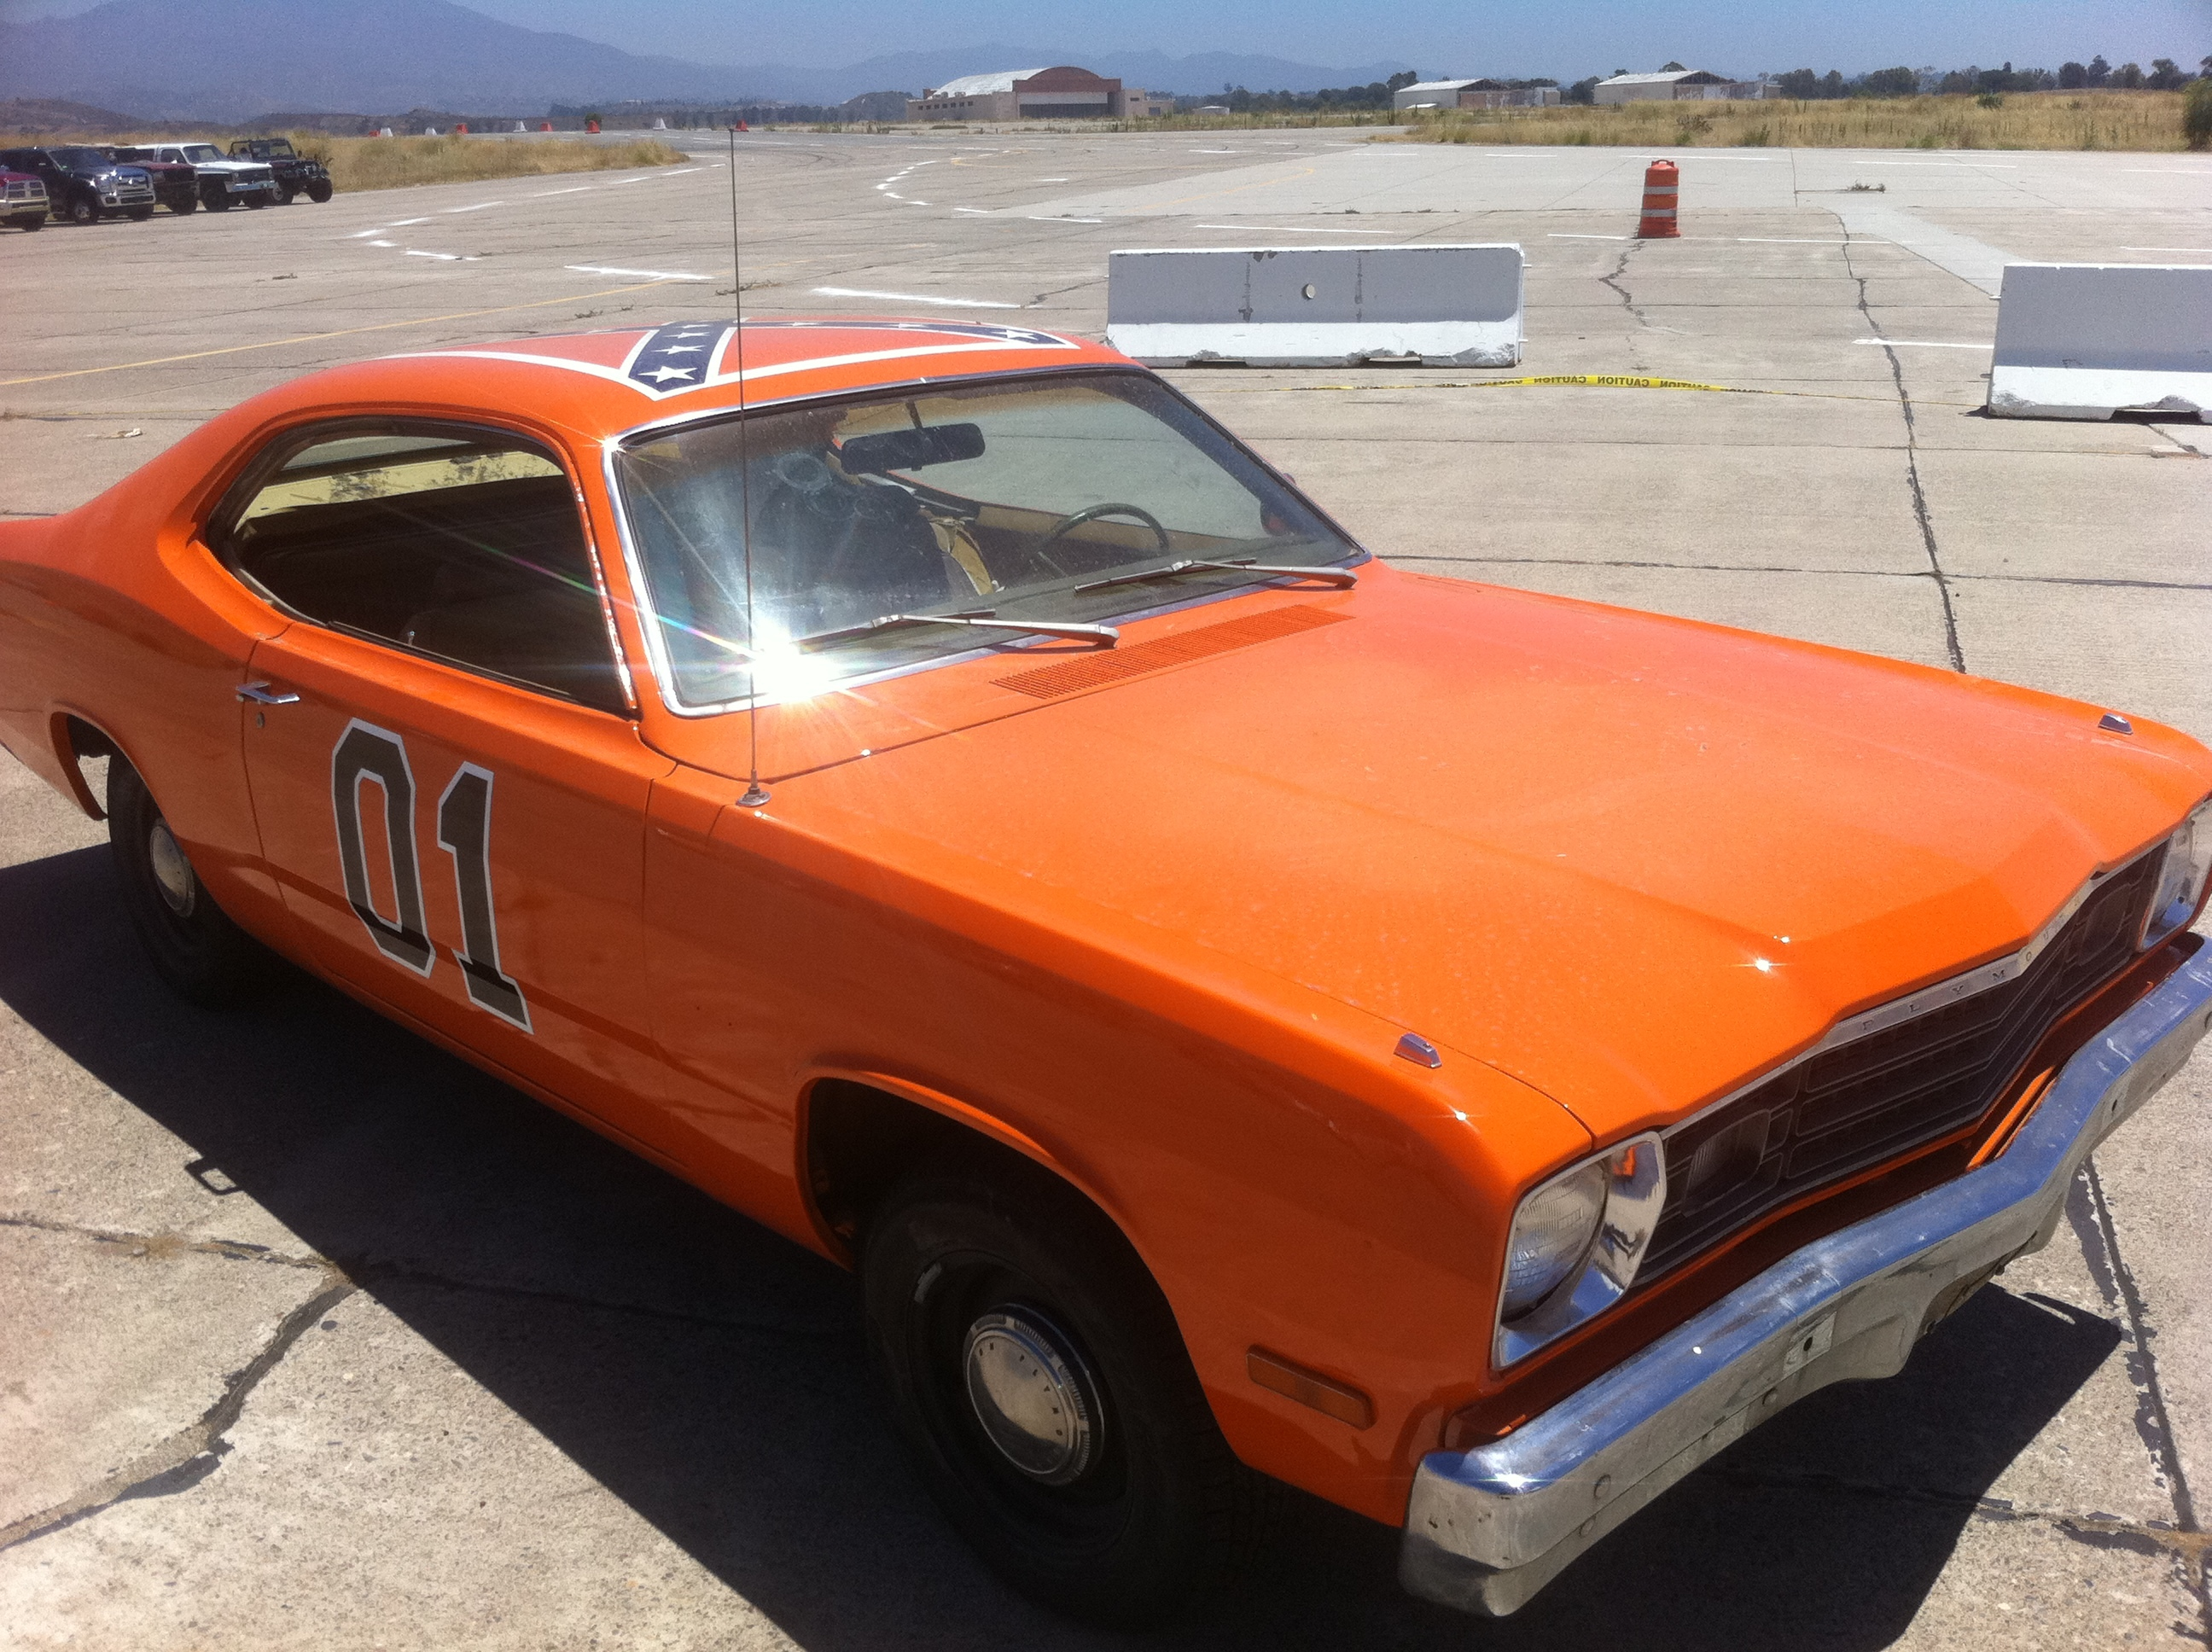 Plymouth Duster remade